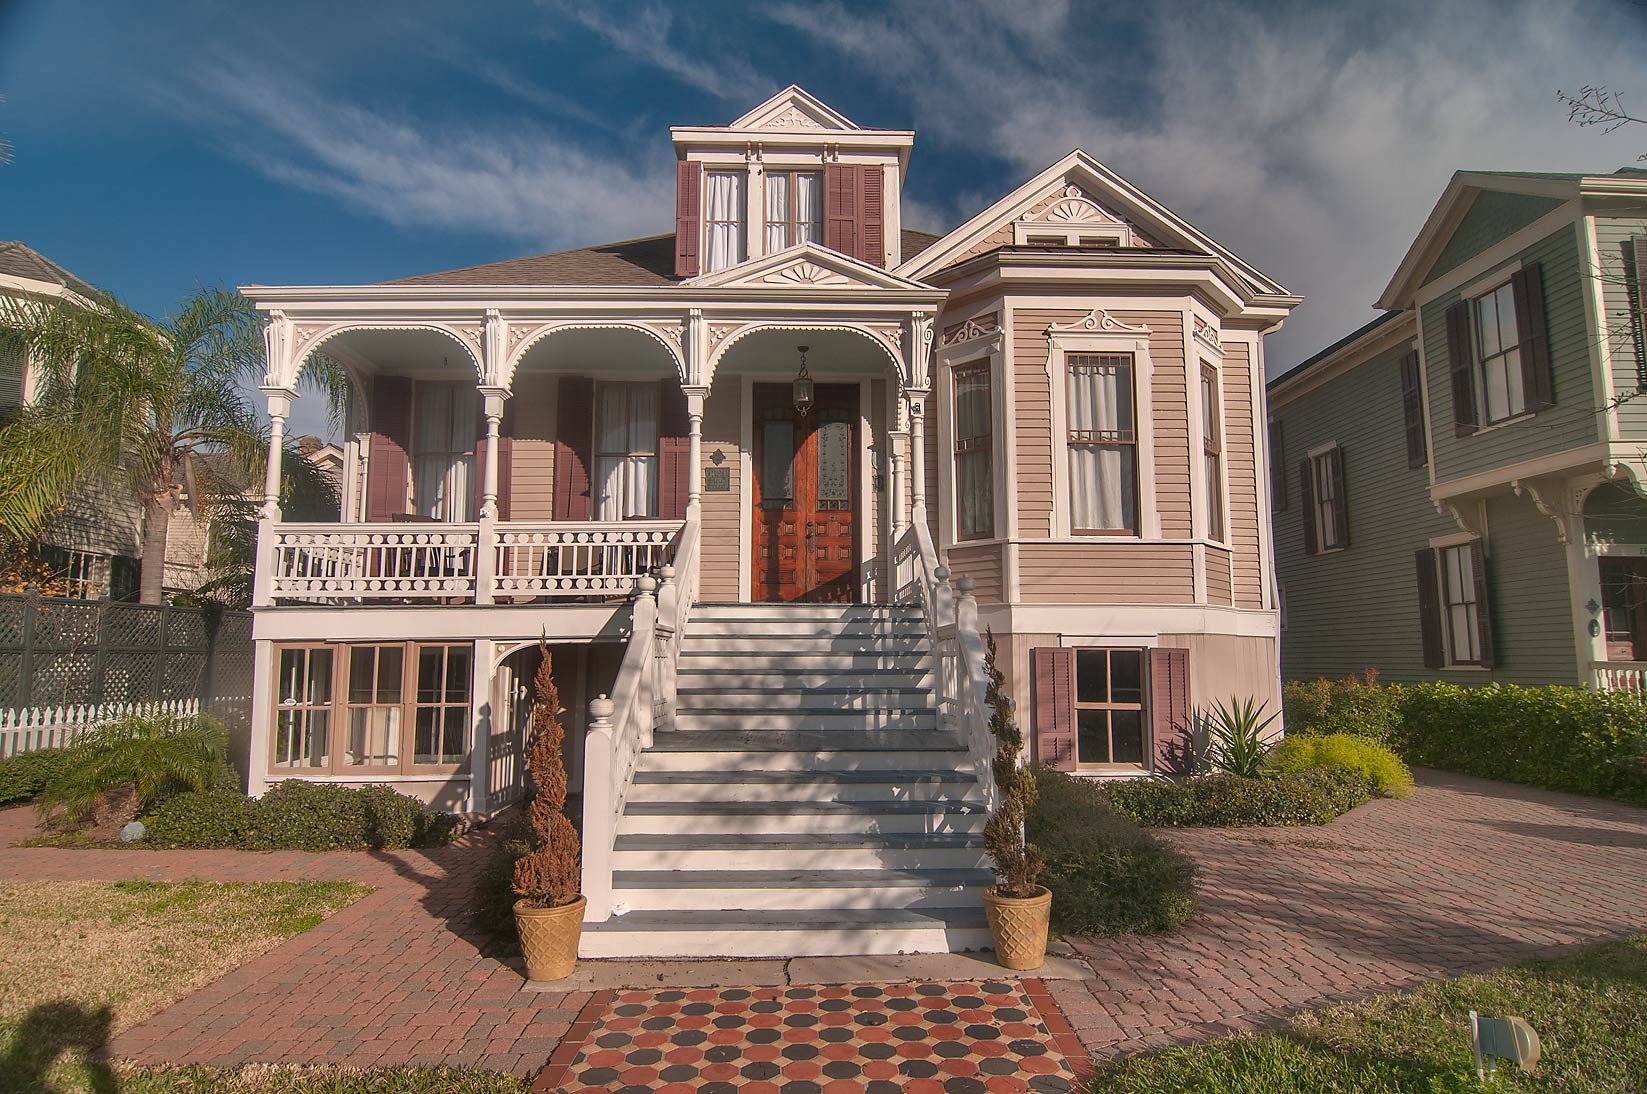 Ball St. in East End Historic District. Galveston, Texas